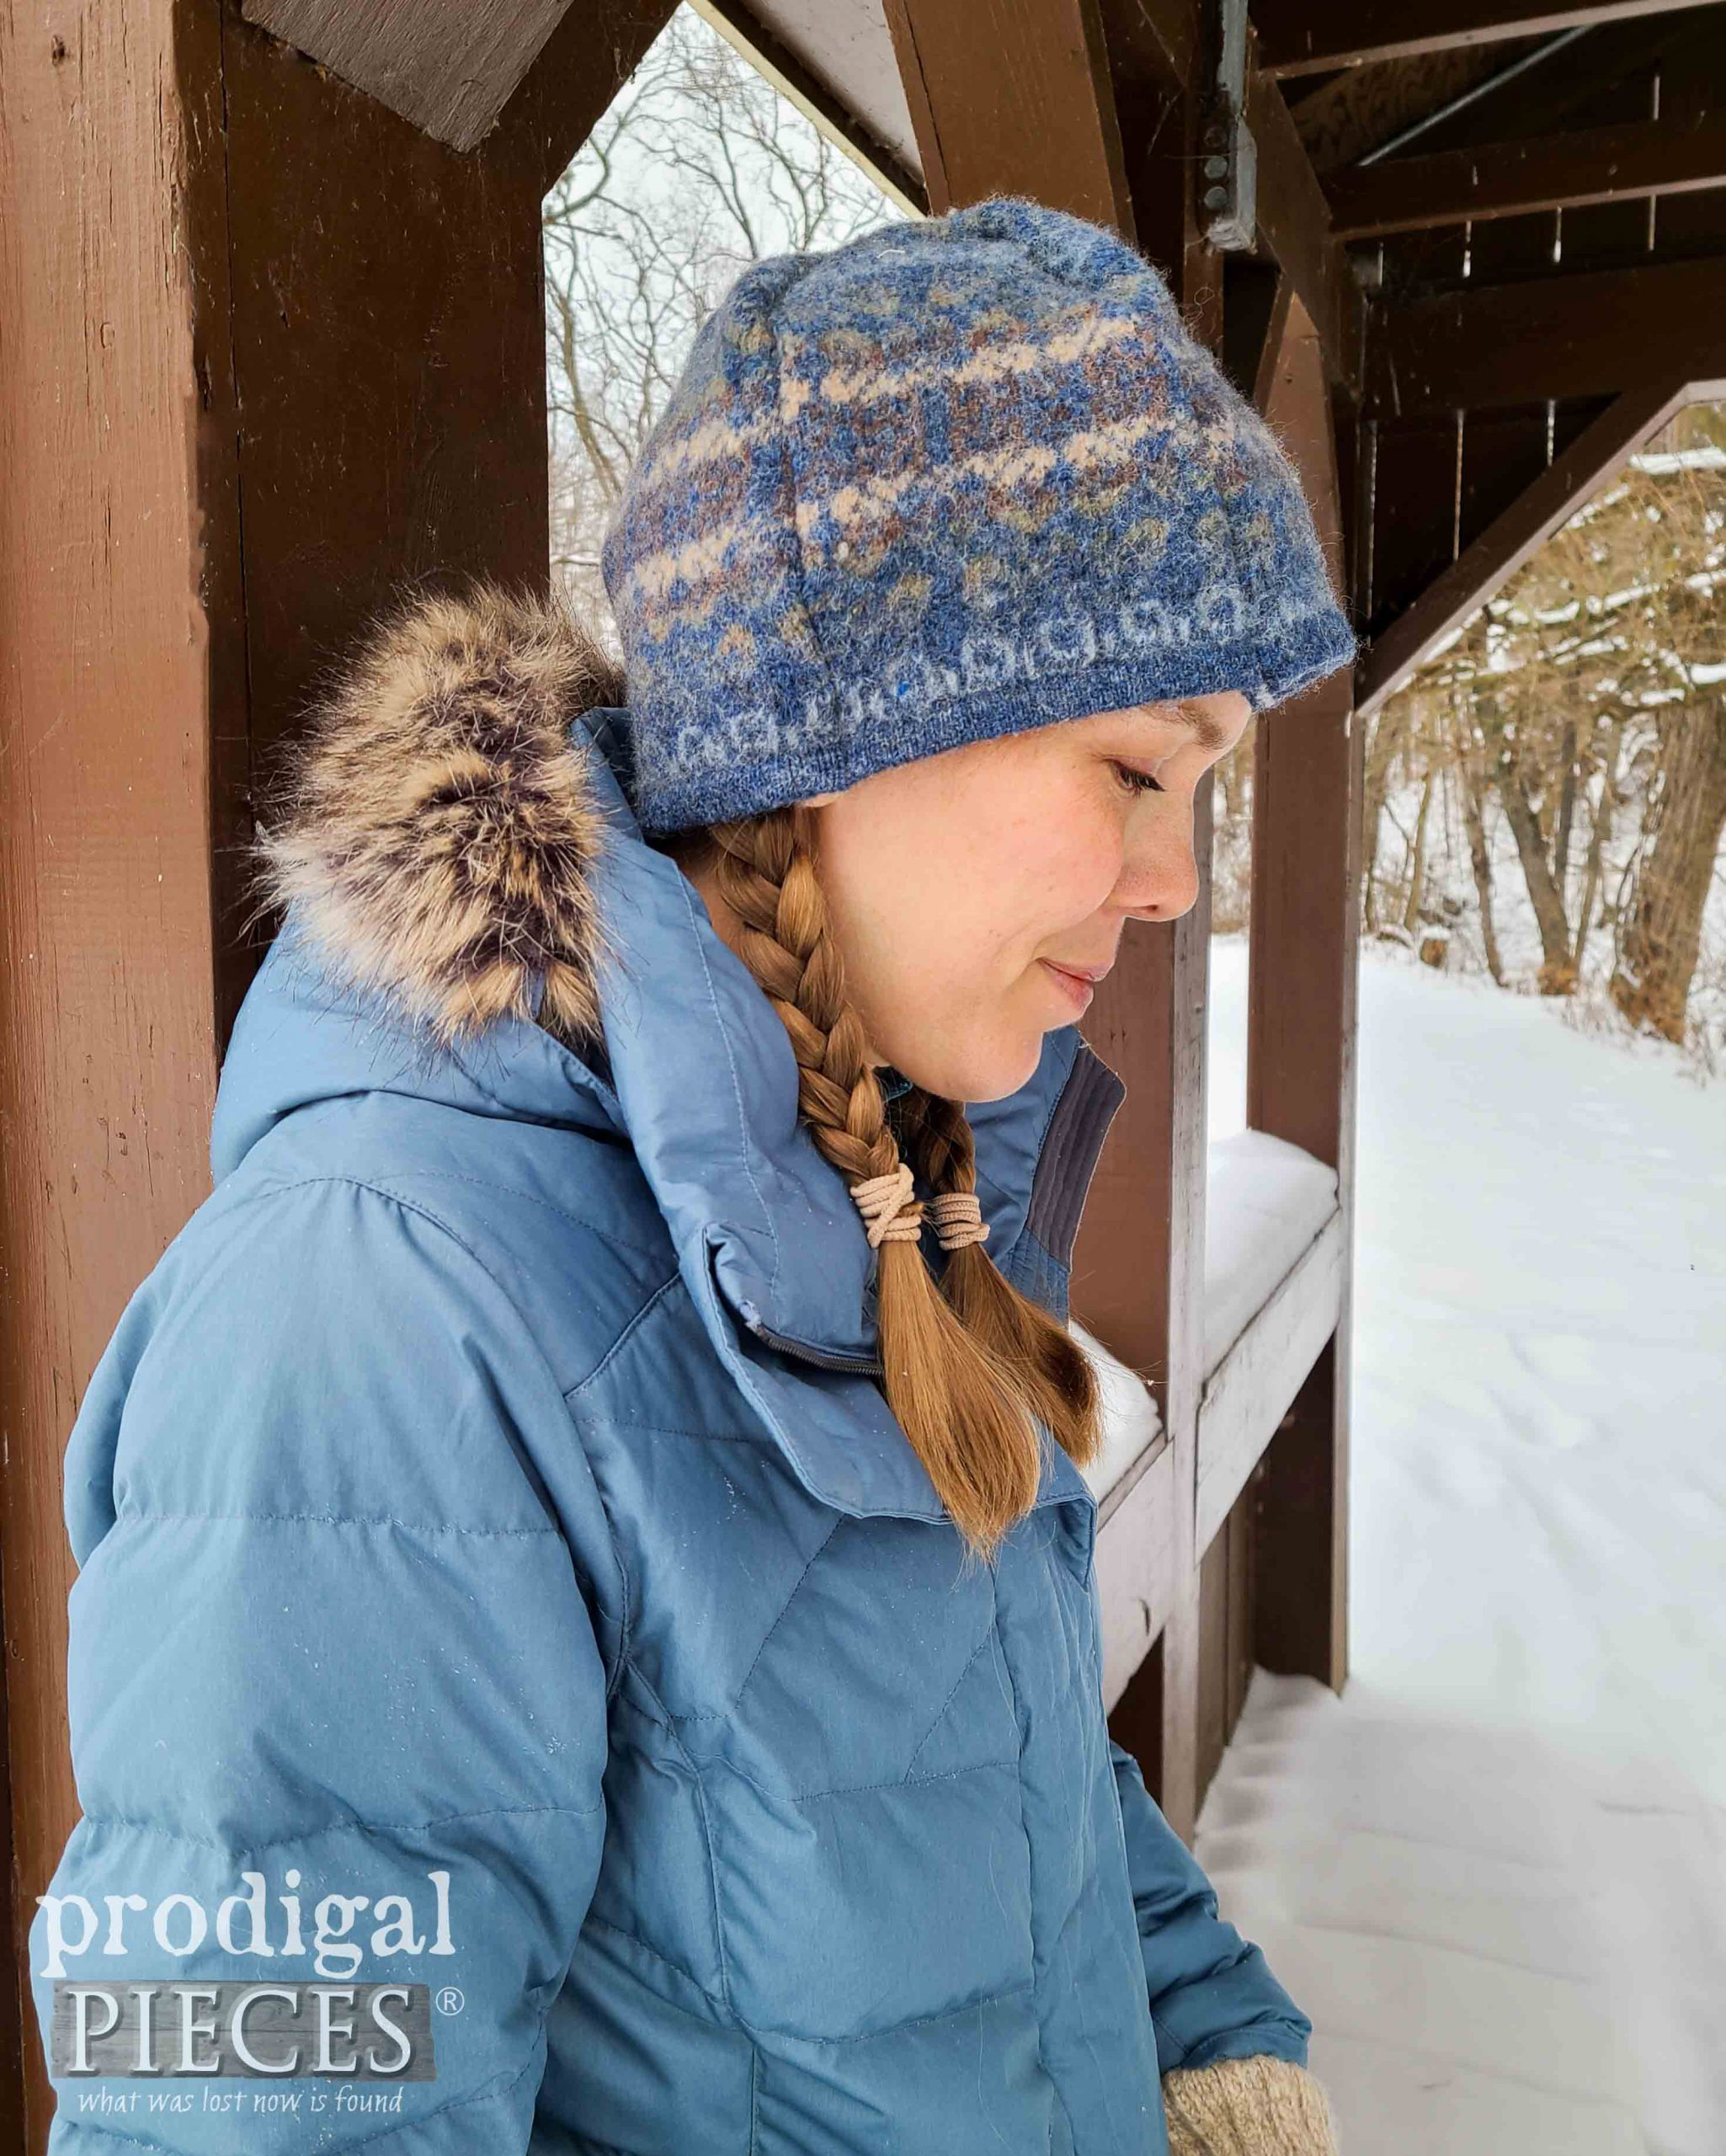 Handmade Felted Wool Sweater Hat made by Larissa of Prodigal Pieces | prodigalpieces.com #prodigalpieces #sewing #fashion #handmade